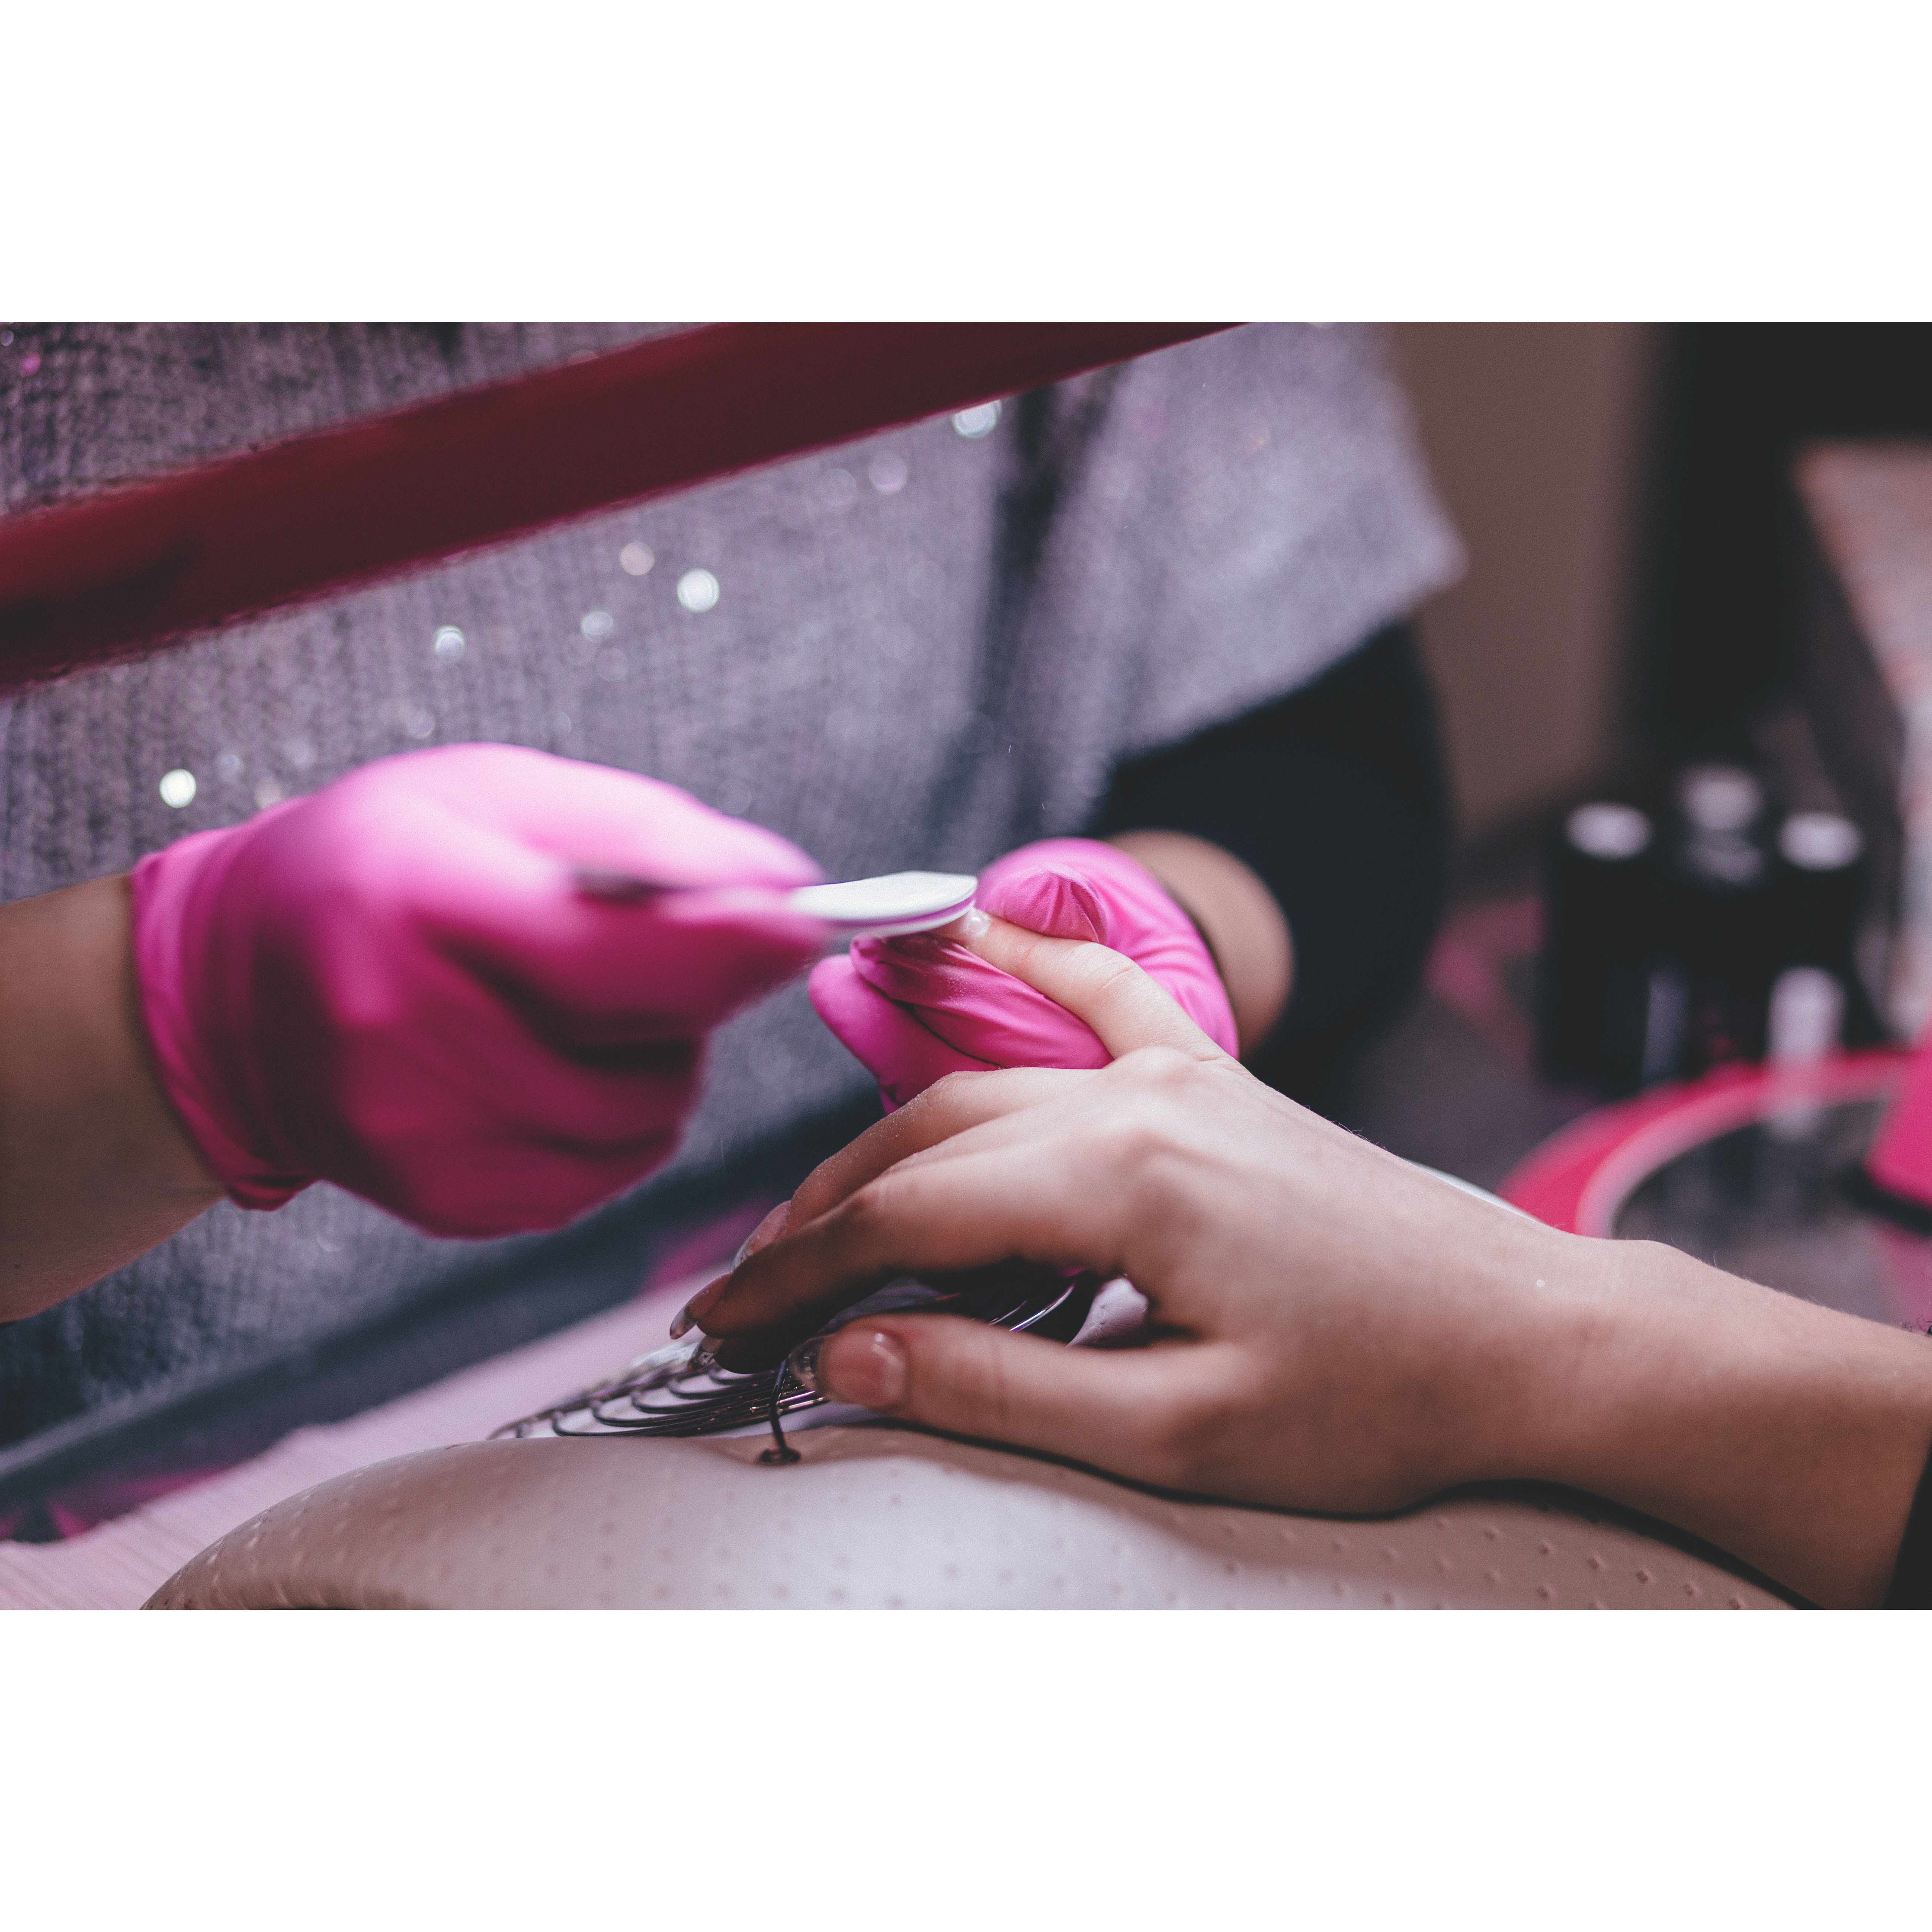 Nail Magic - Lakewood, WA - Beauty Salons & Hair Care